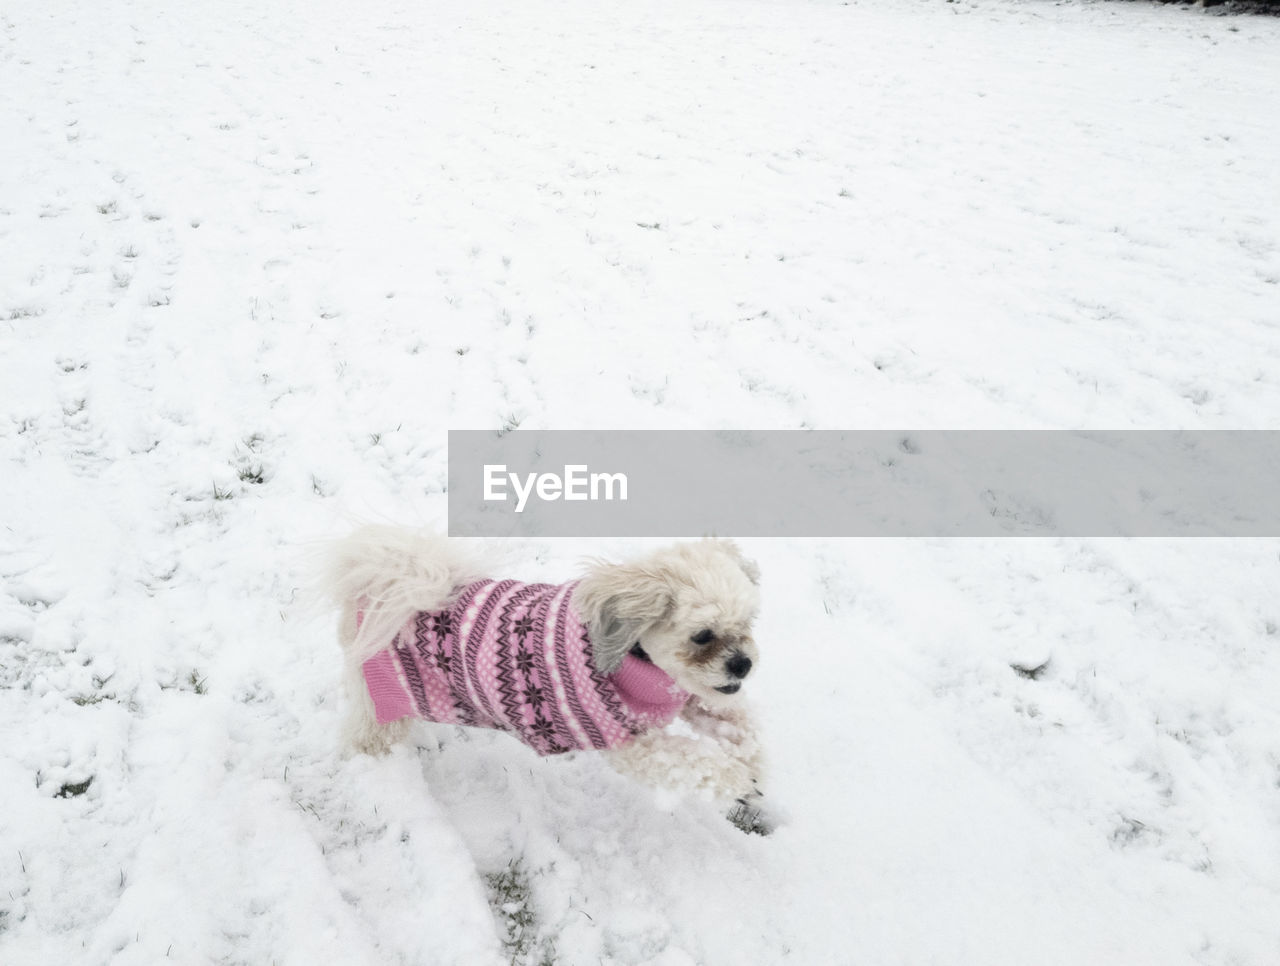 canine, one animal, dog, pets, domestic, animal themes, snow, animal, domestic animals, mammal, cold temperature, winter, vertebrate, white color, pet clothing, day, clothing, no people, land, small, warm clothing, snowing